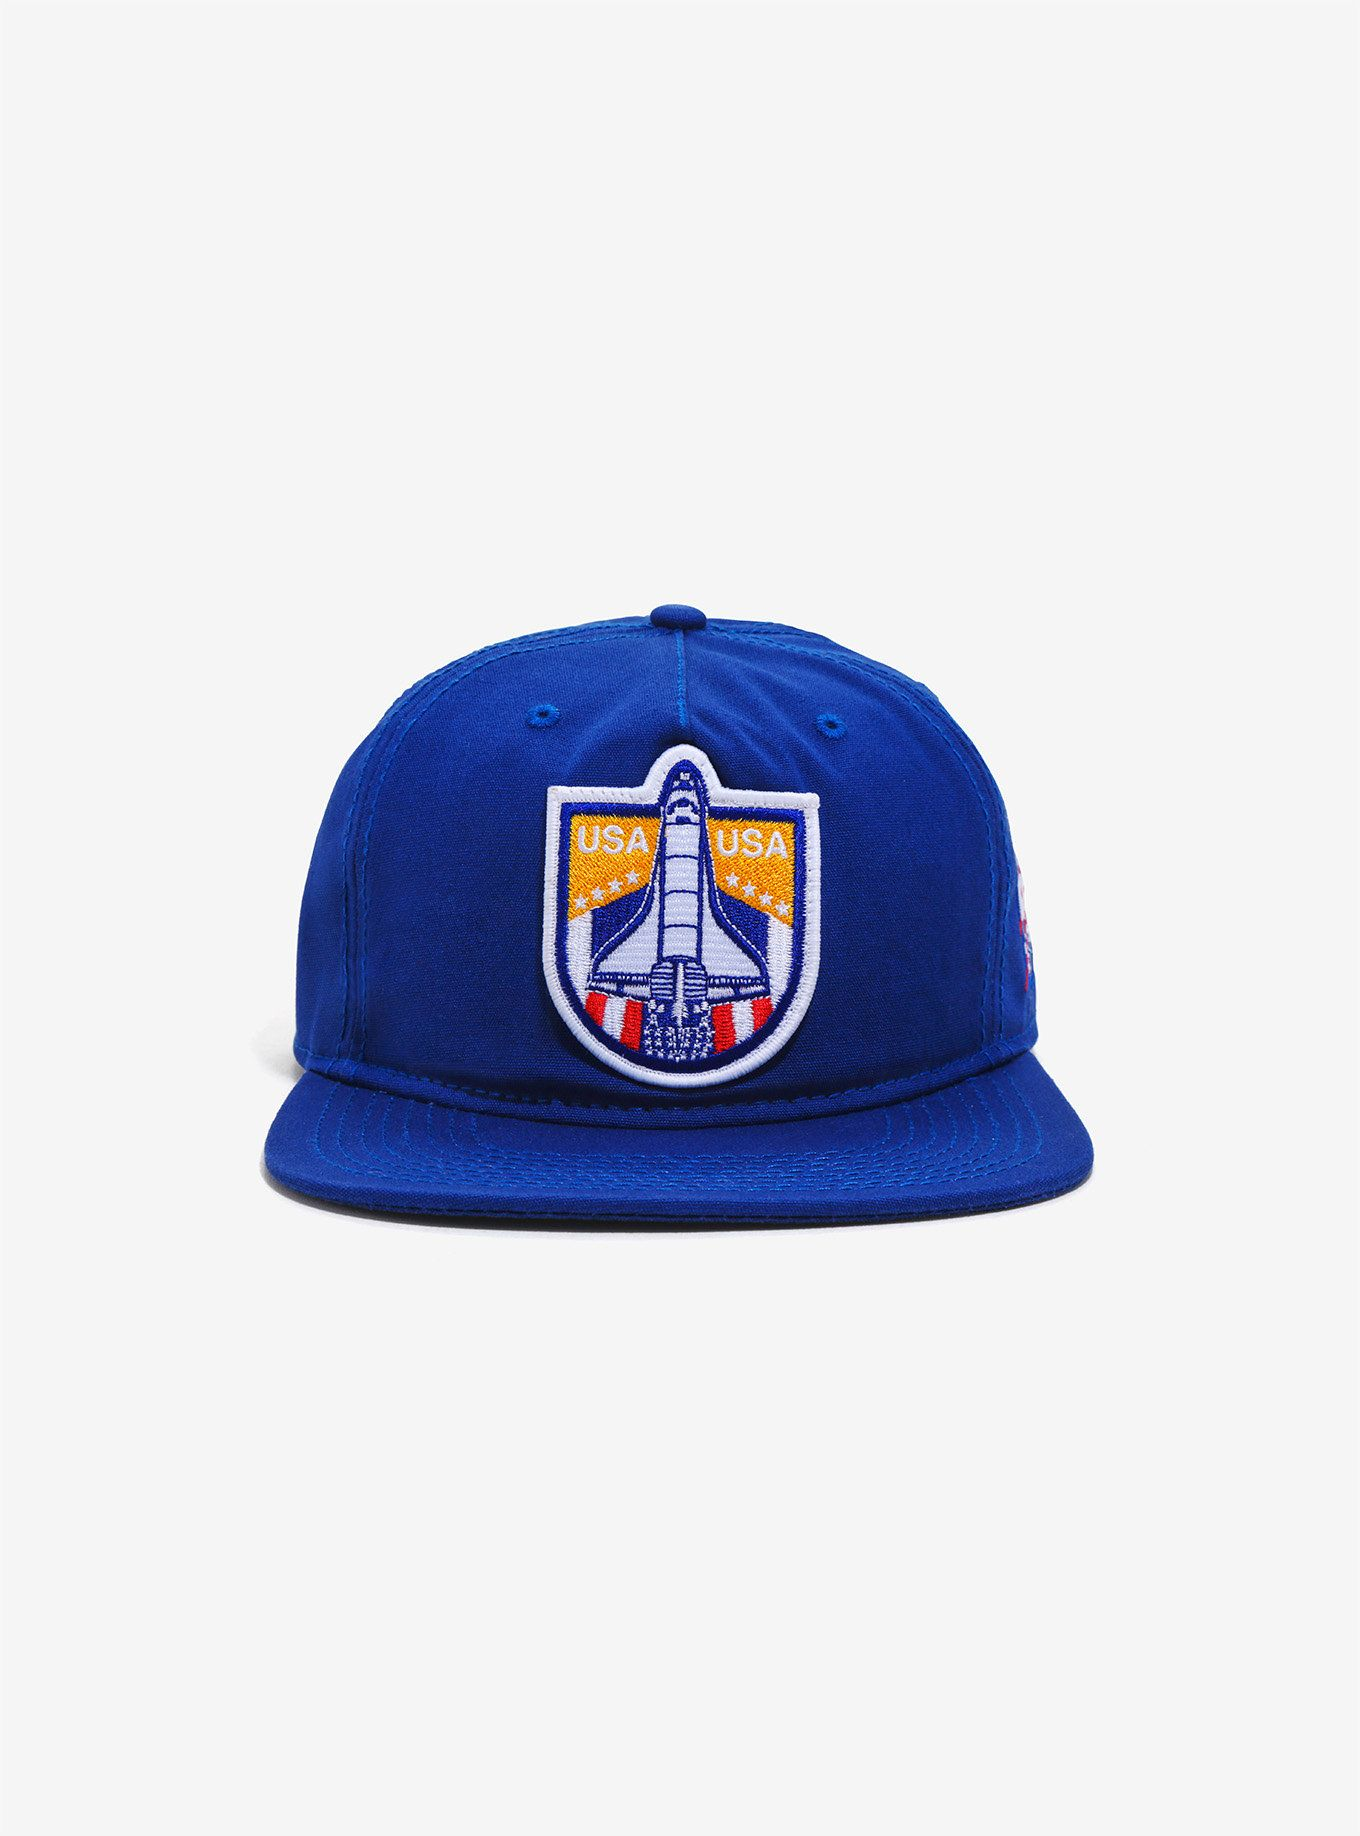 NASA Liftoff Snapback Hat  c20ff50c62d3